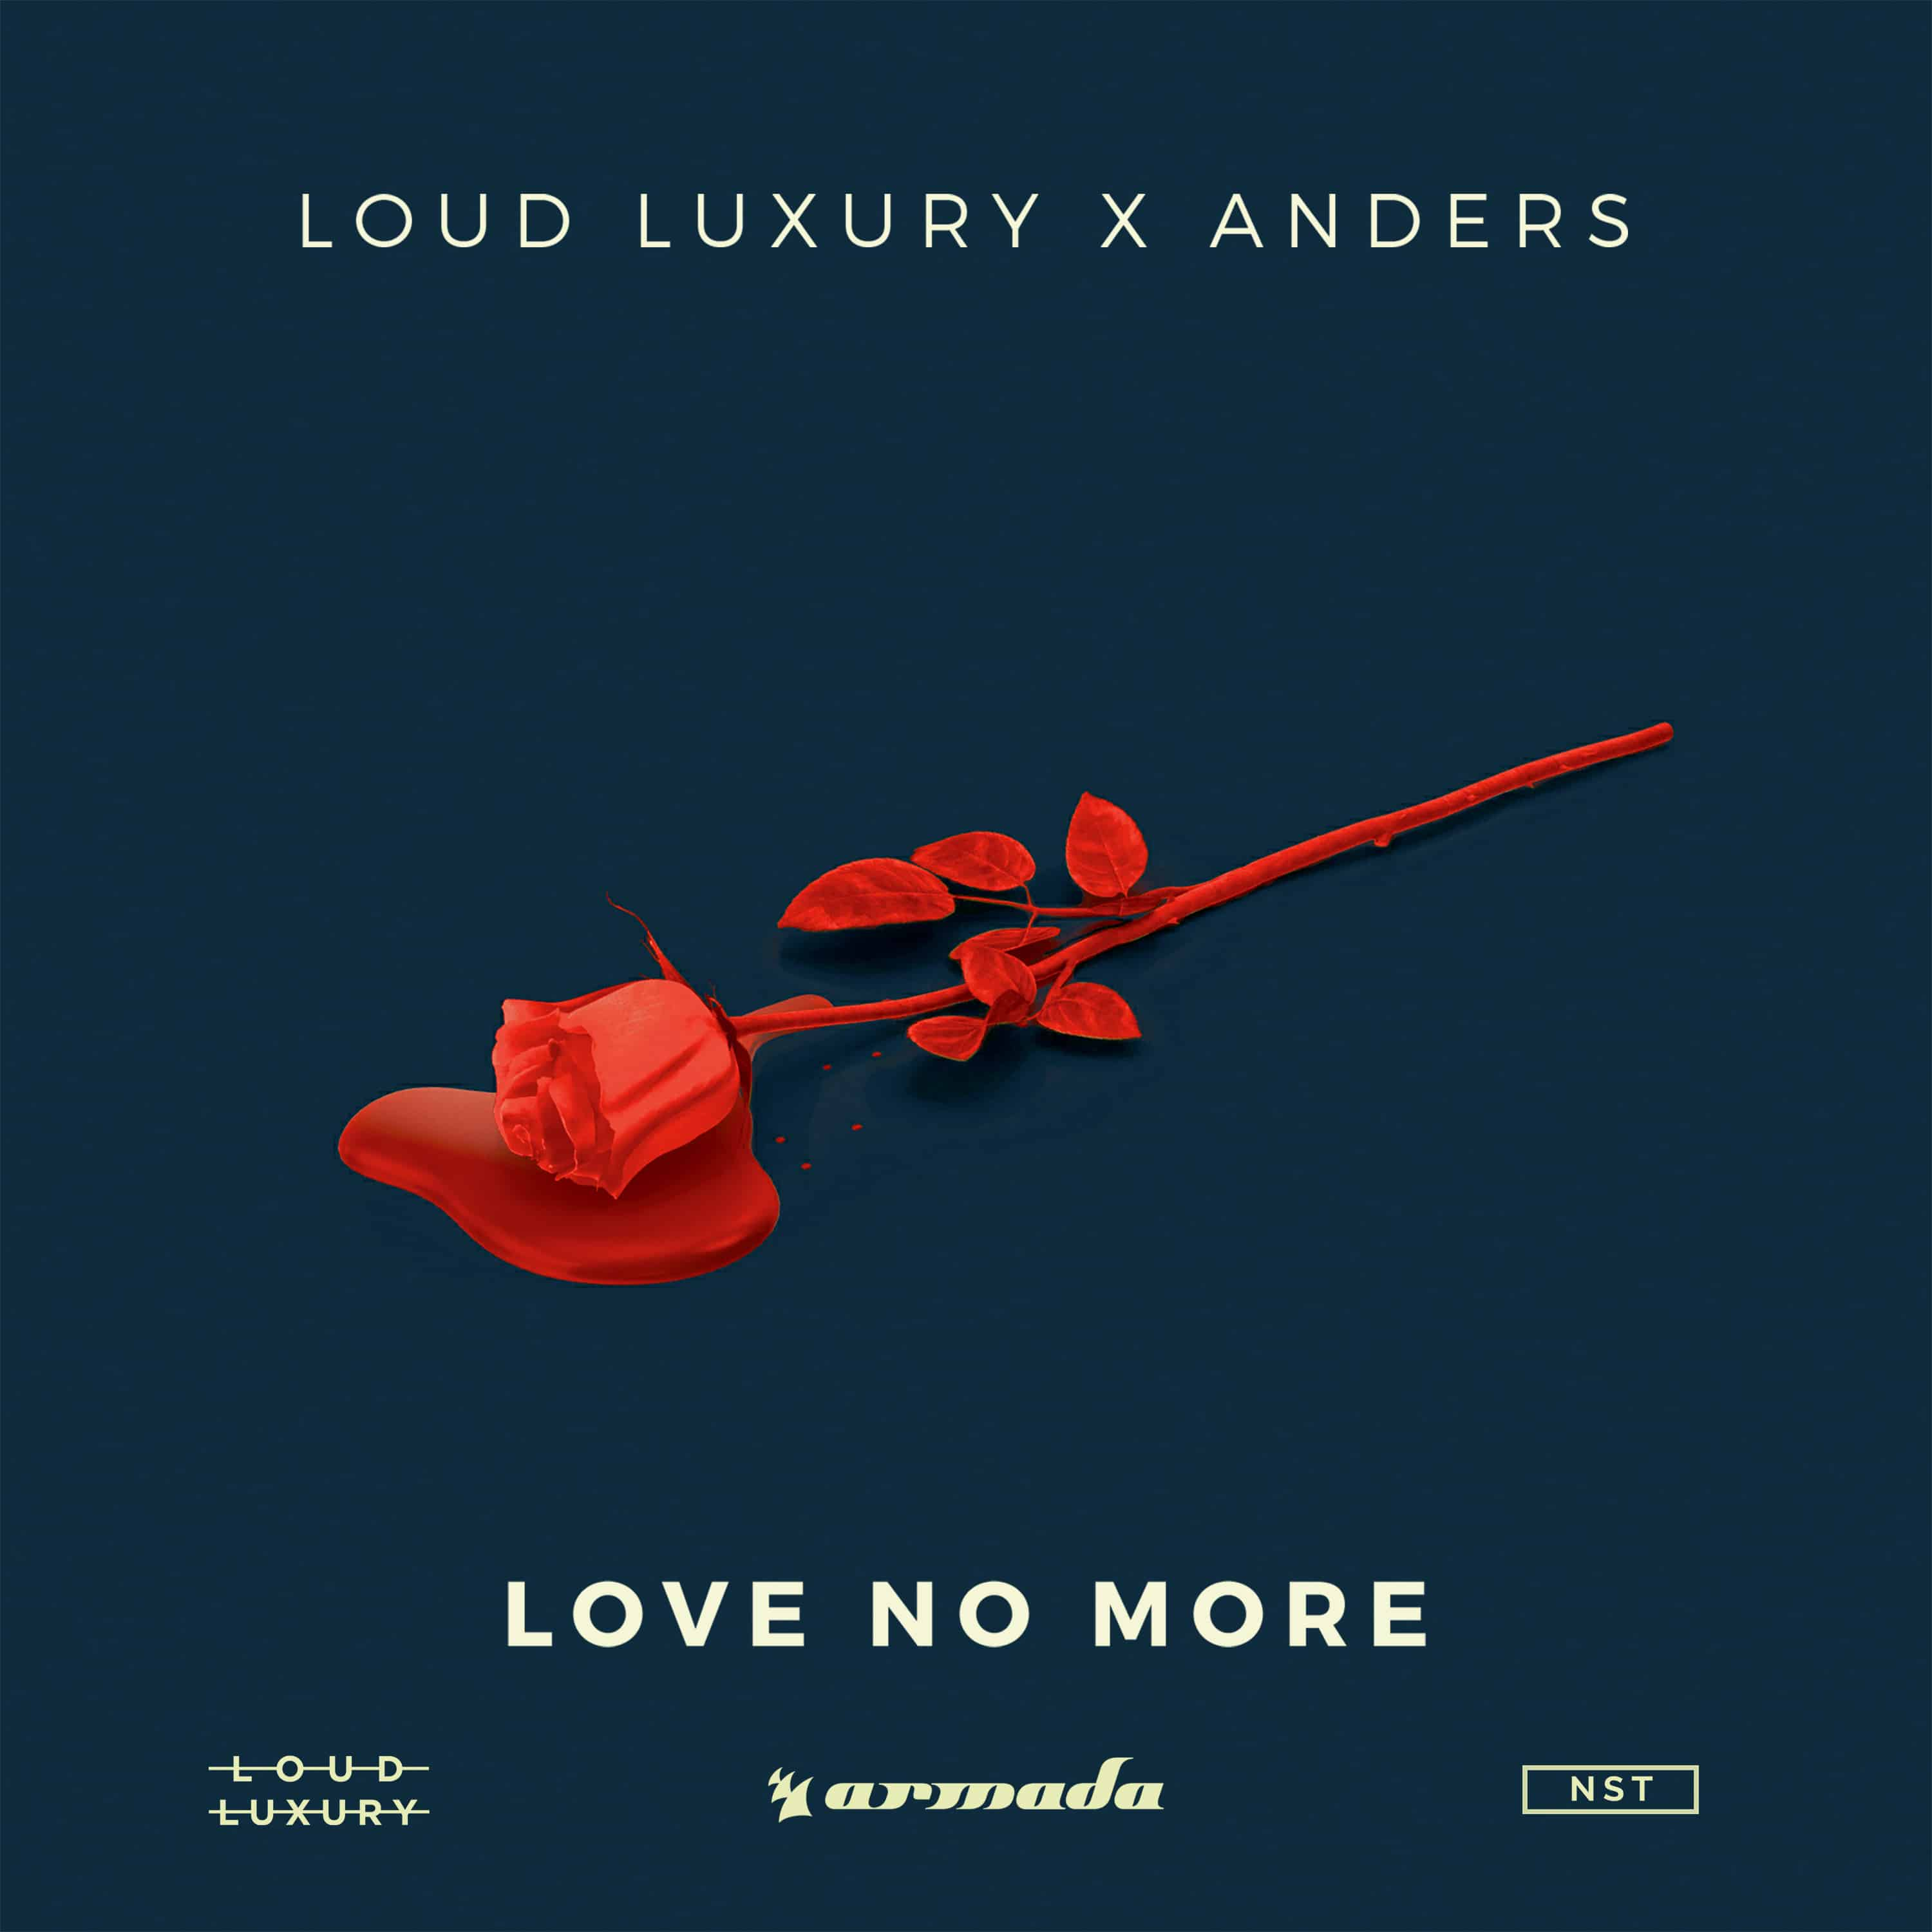 Loud Luxury x anders - Love No More